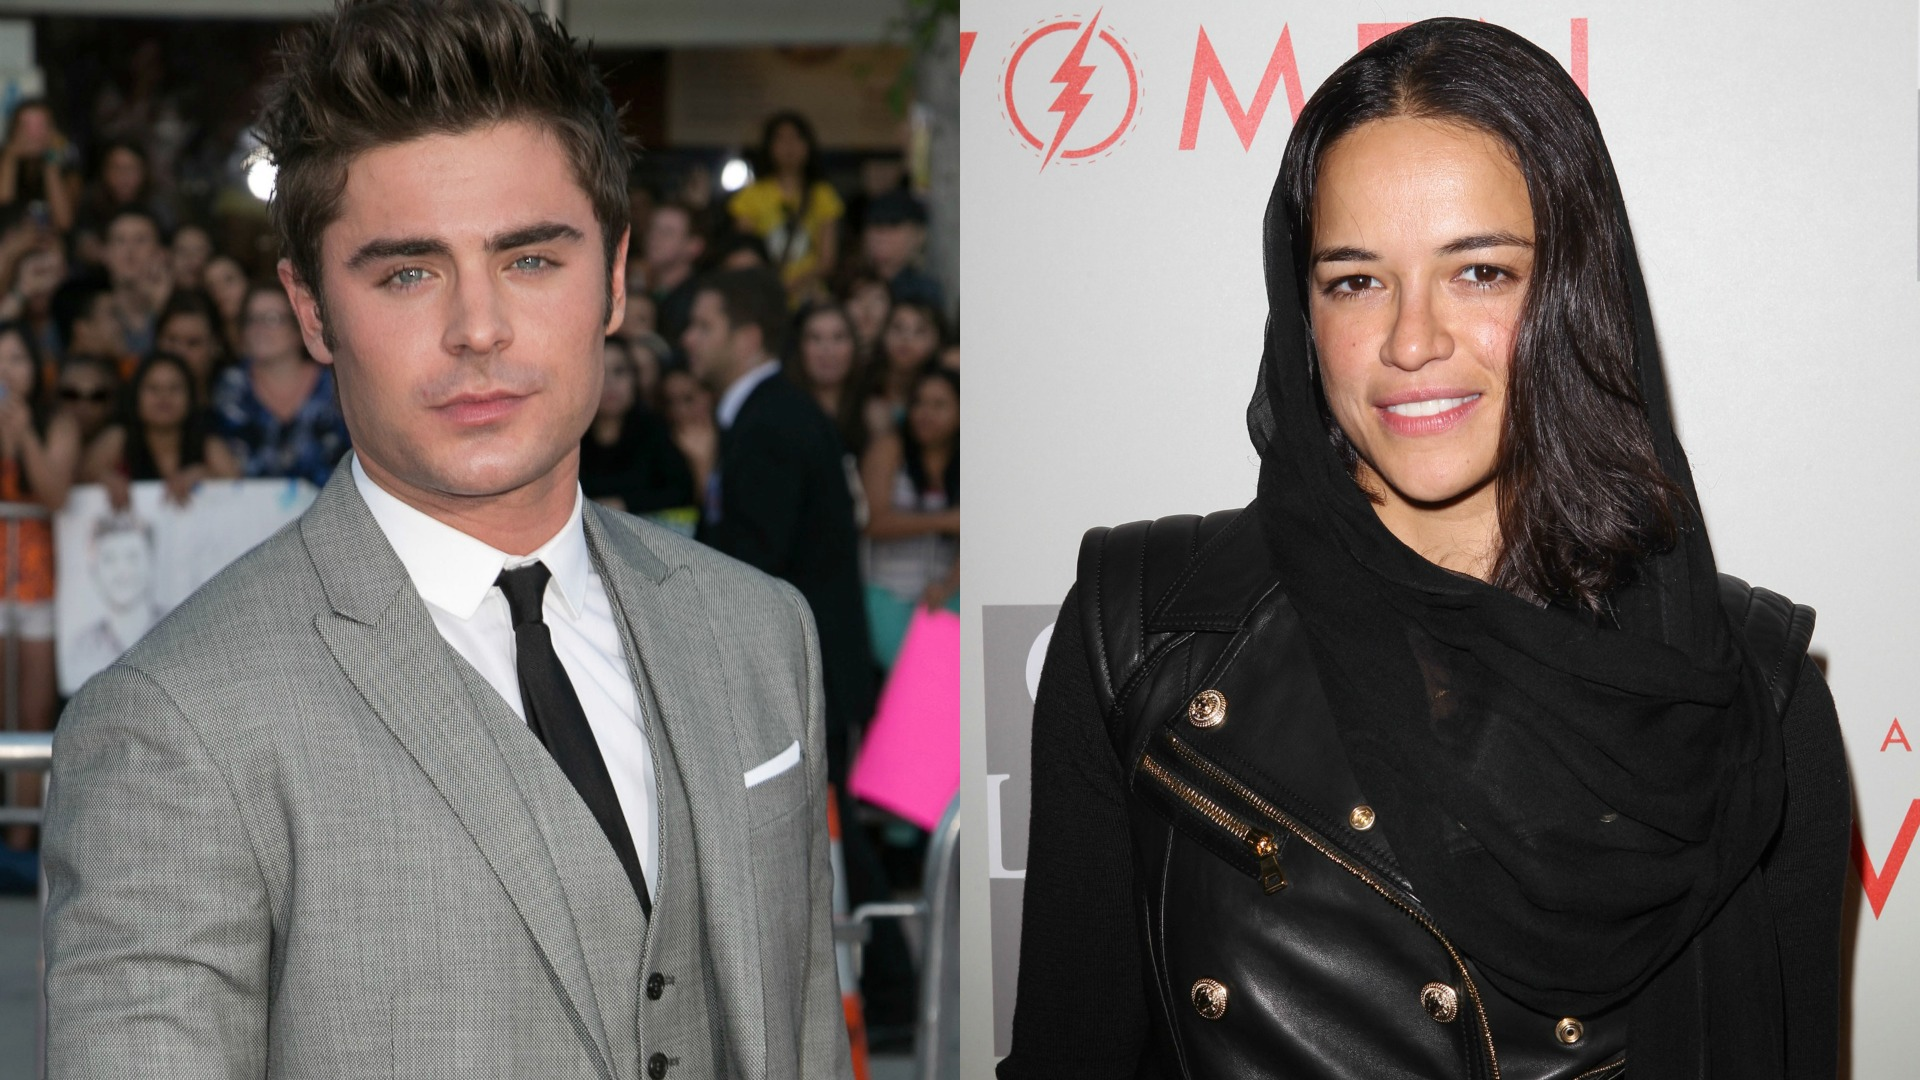 Zac Efron and Michelle Rodriguez have an Italian fling